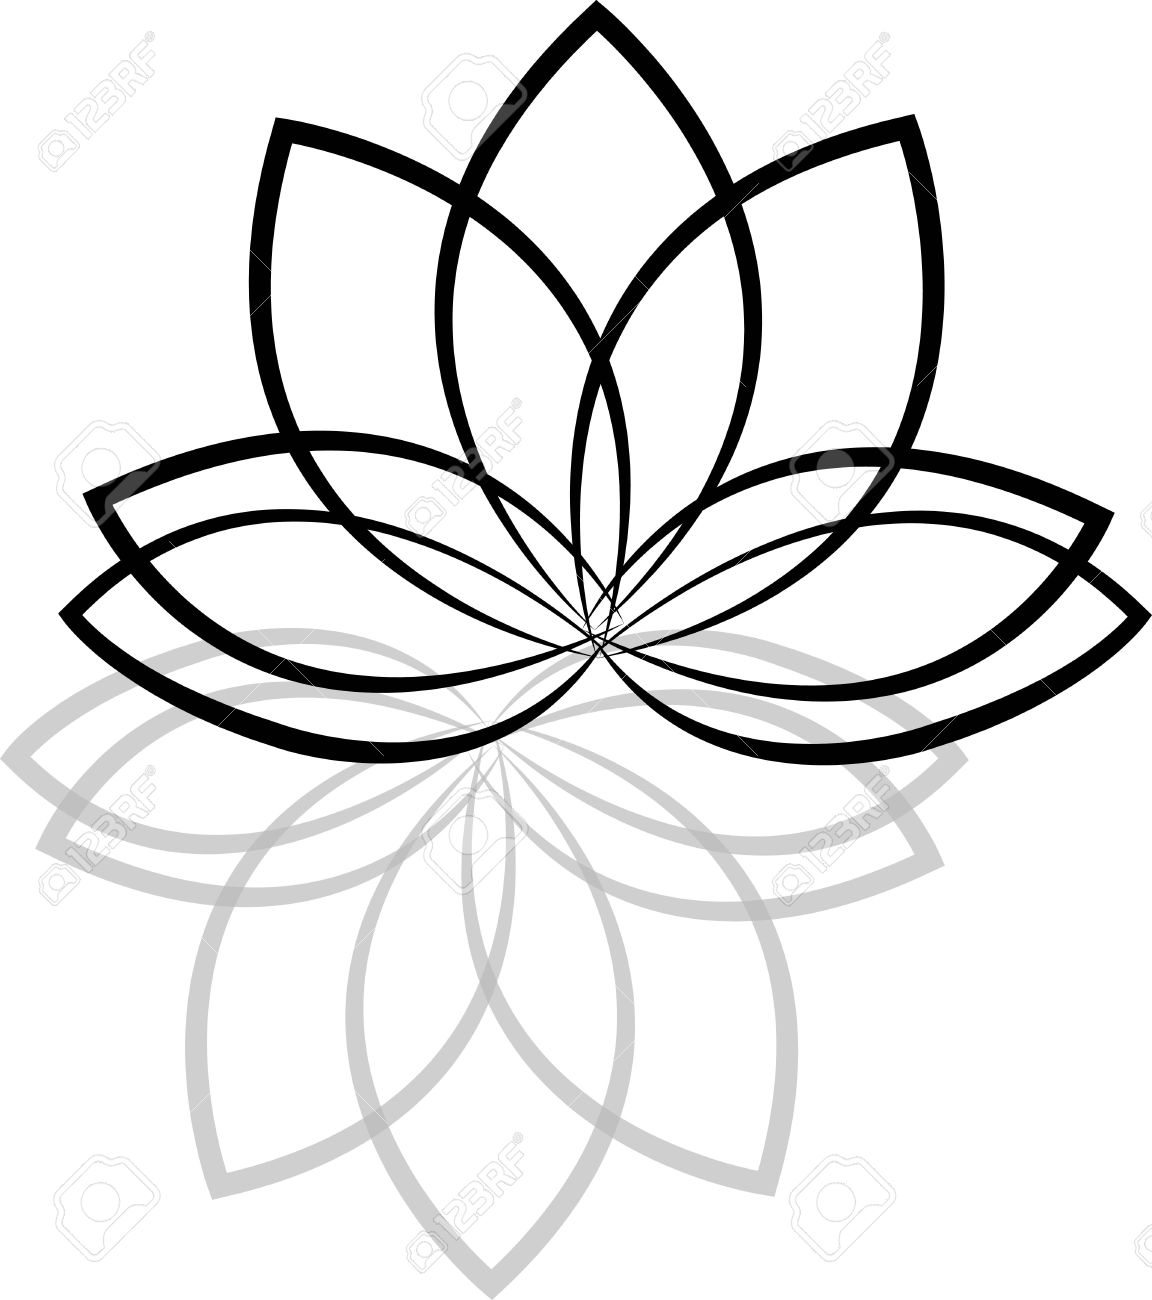 Lotus flowers silhouettes on white background stock photo picture lotus flowers silhouettes on white background stock photo 34565860 izmirmasajfo Images